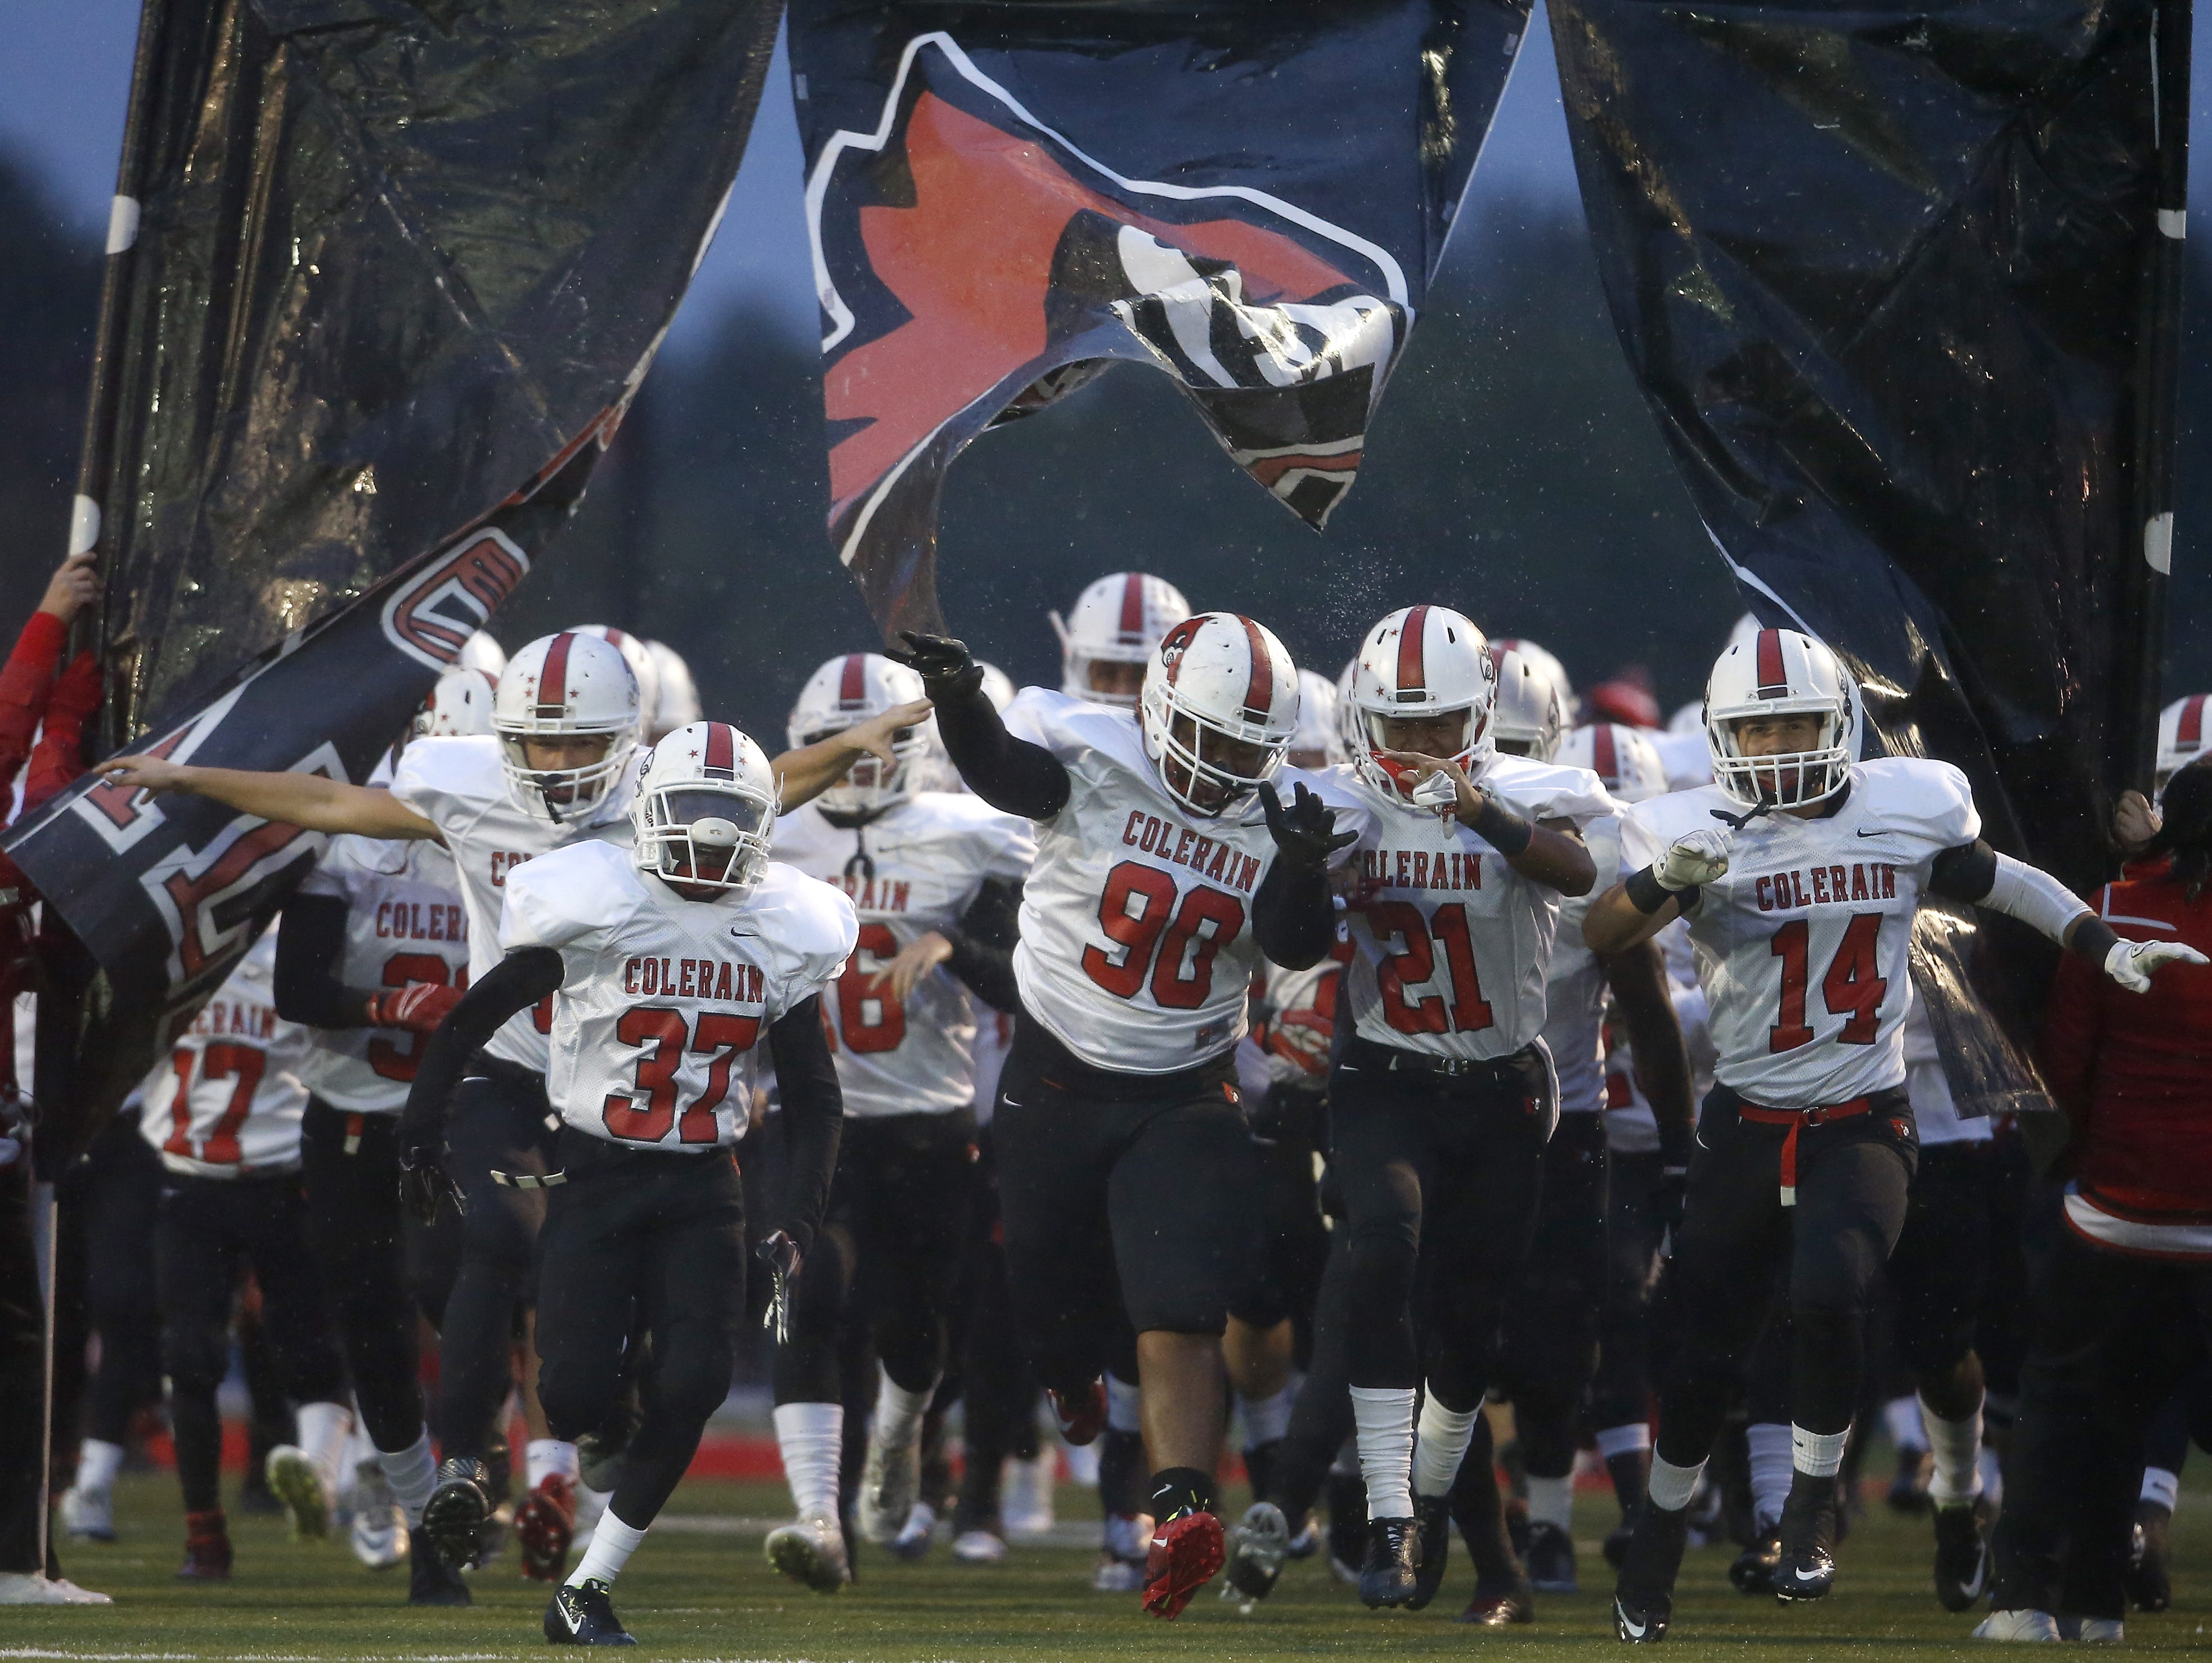 Colerain's football team is ranked third in Division I in the latest AP poll.